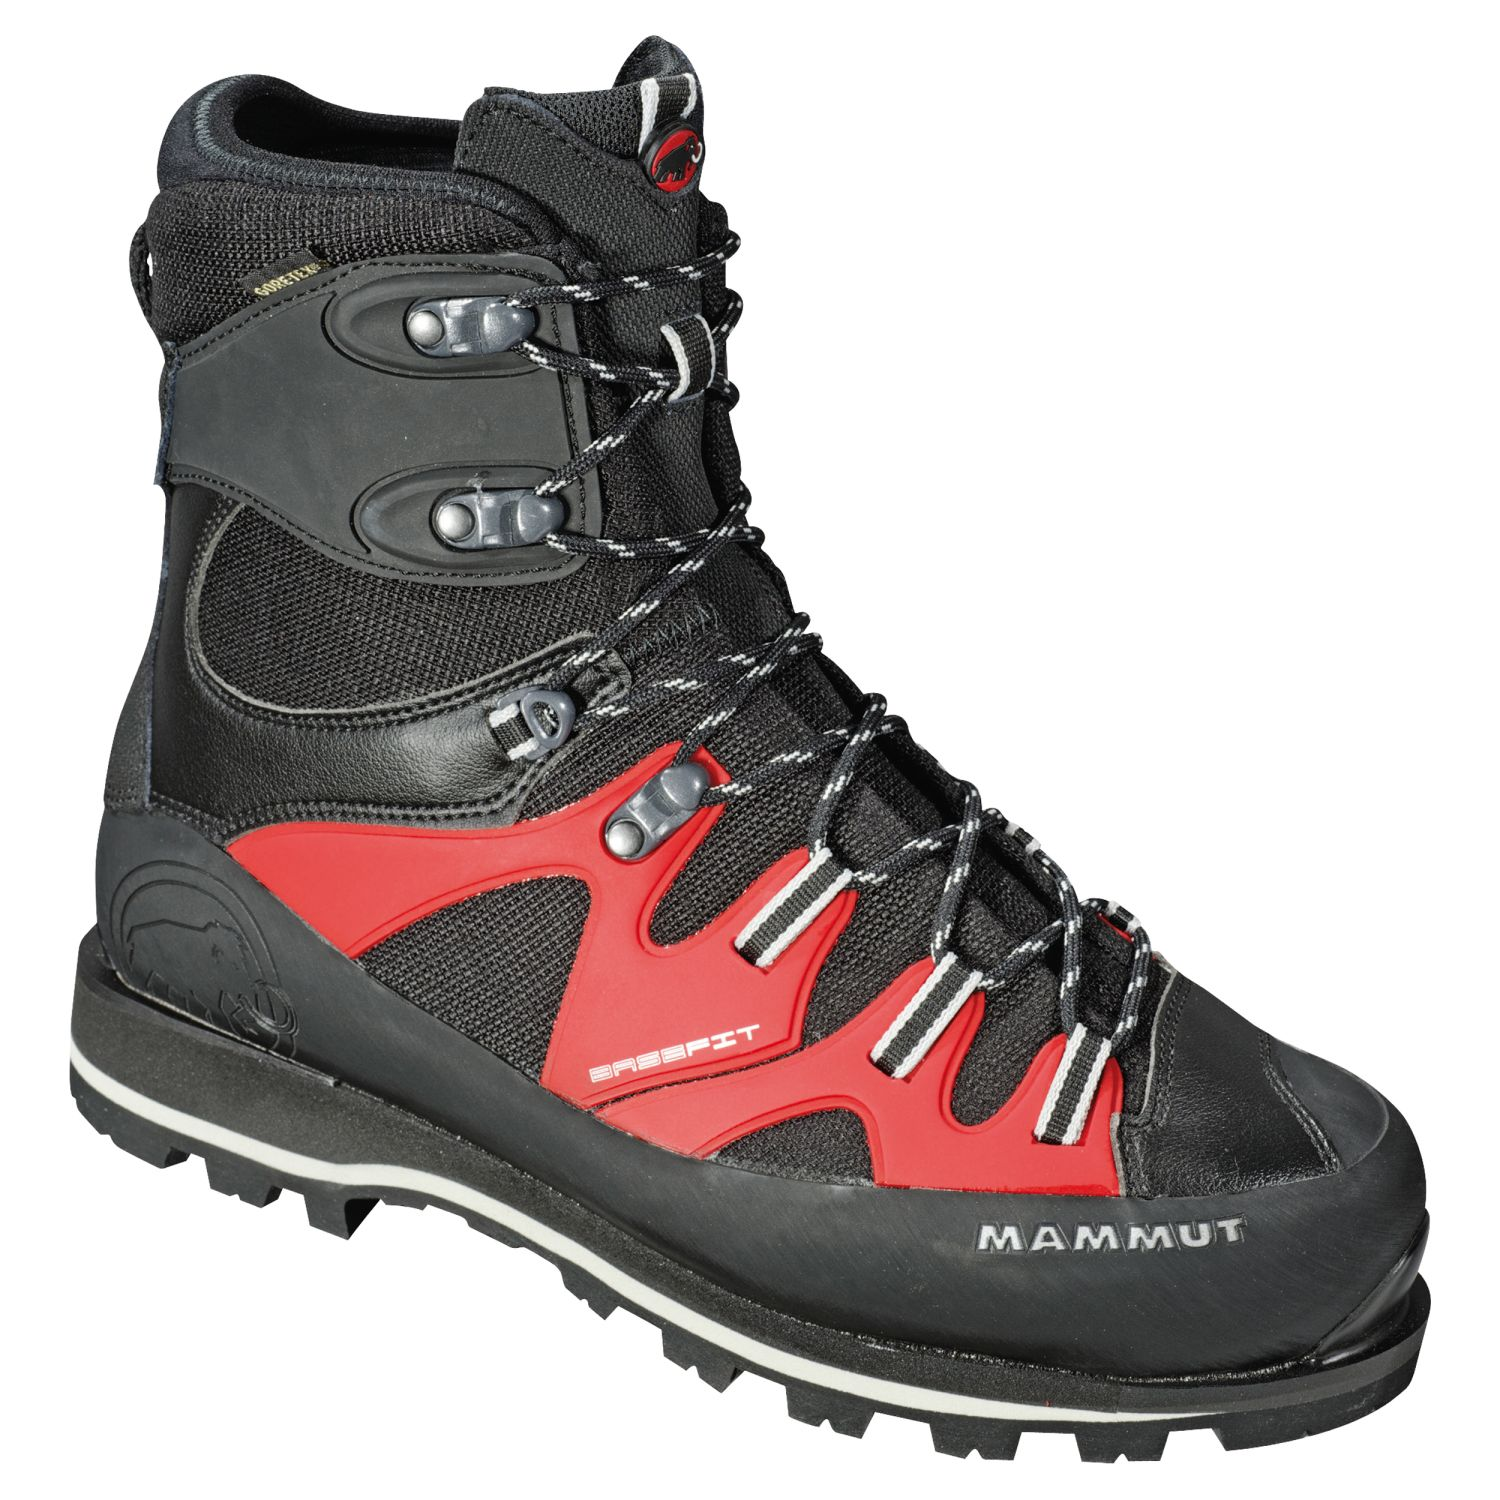 photo: Mammut Mamook GTX mountaineering boot